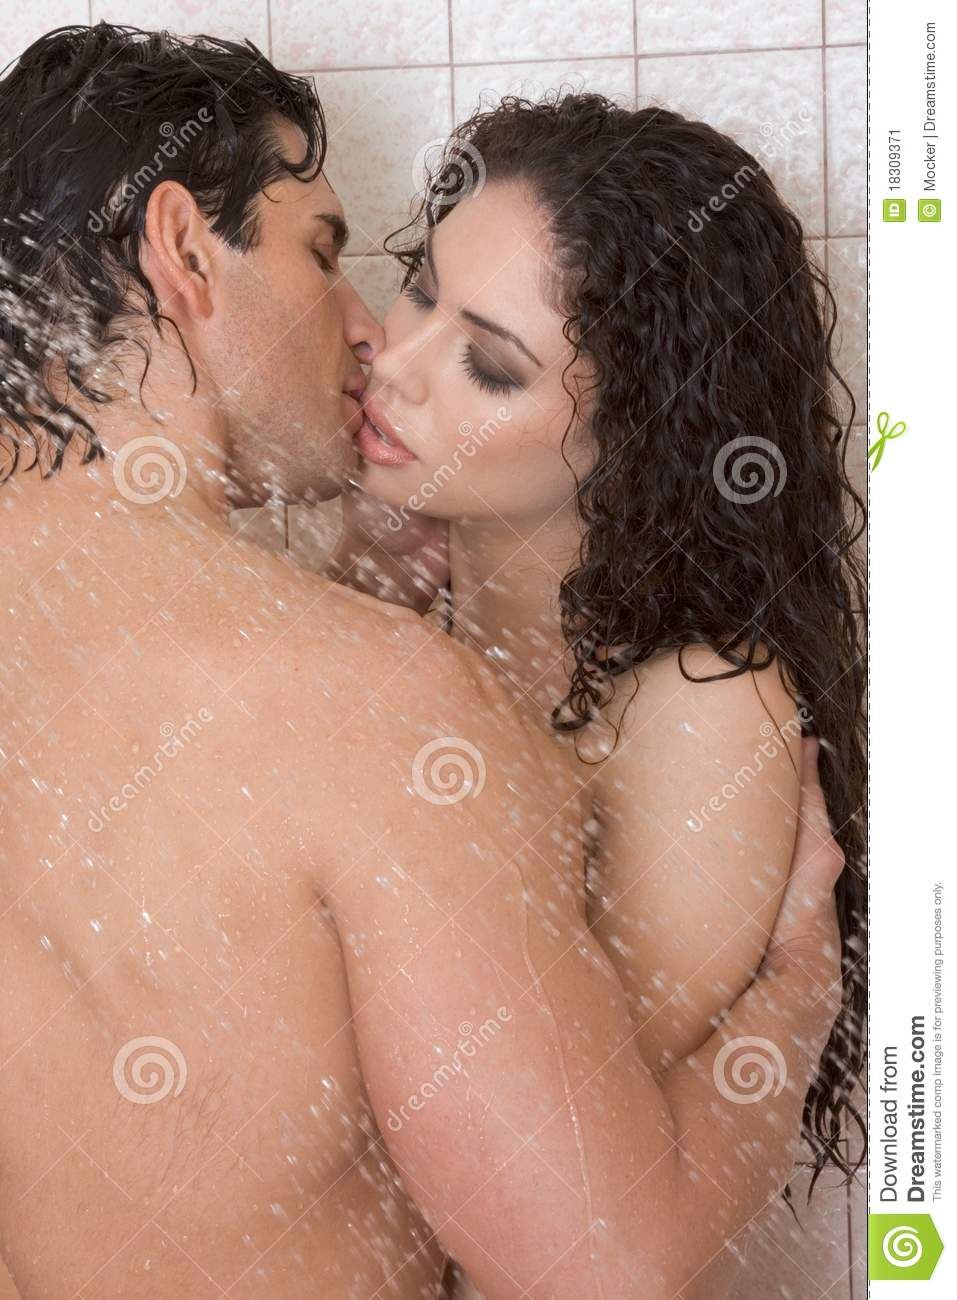 And Hot men kissing naked girls